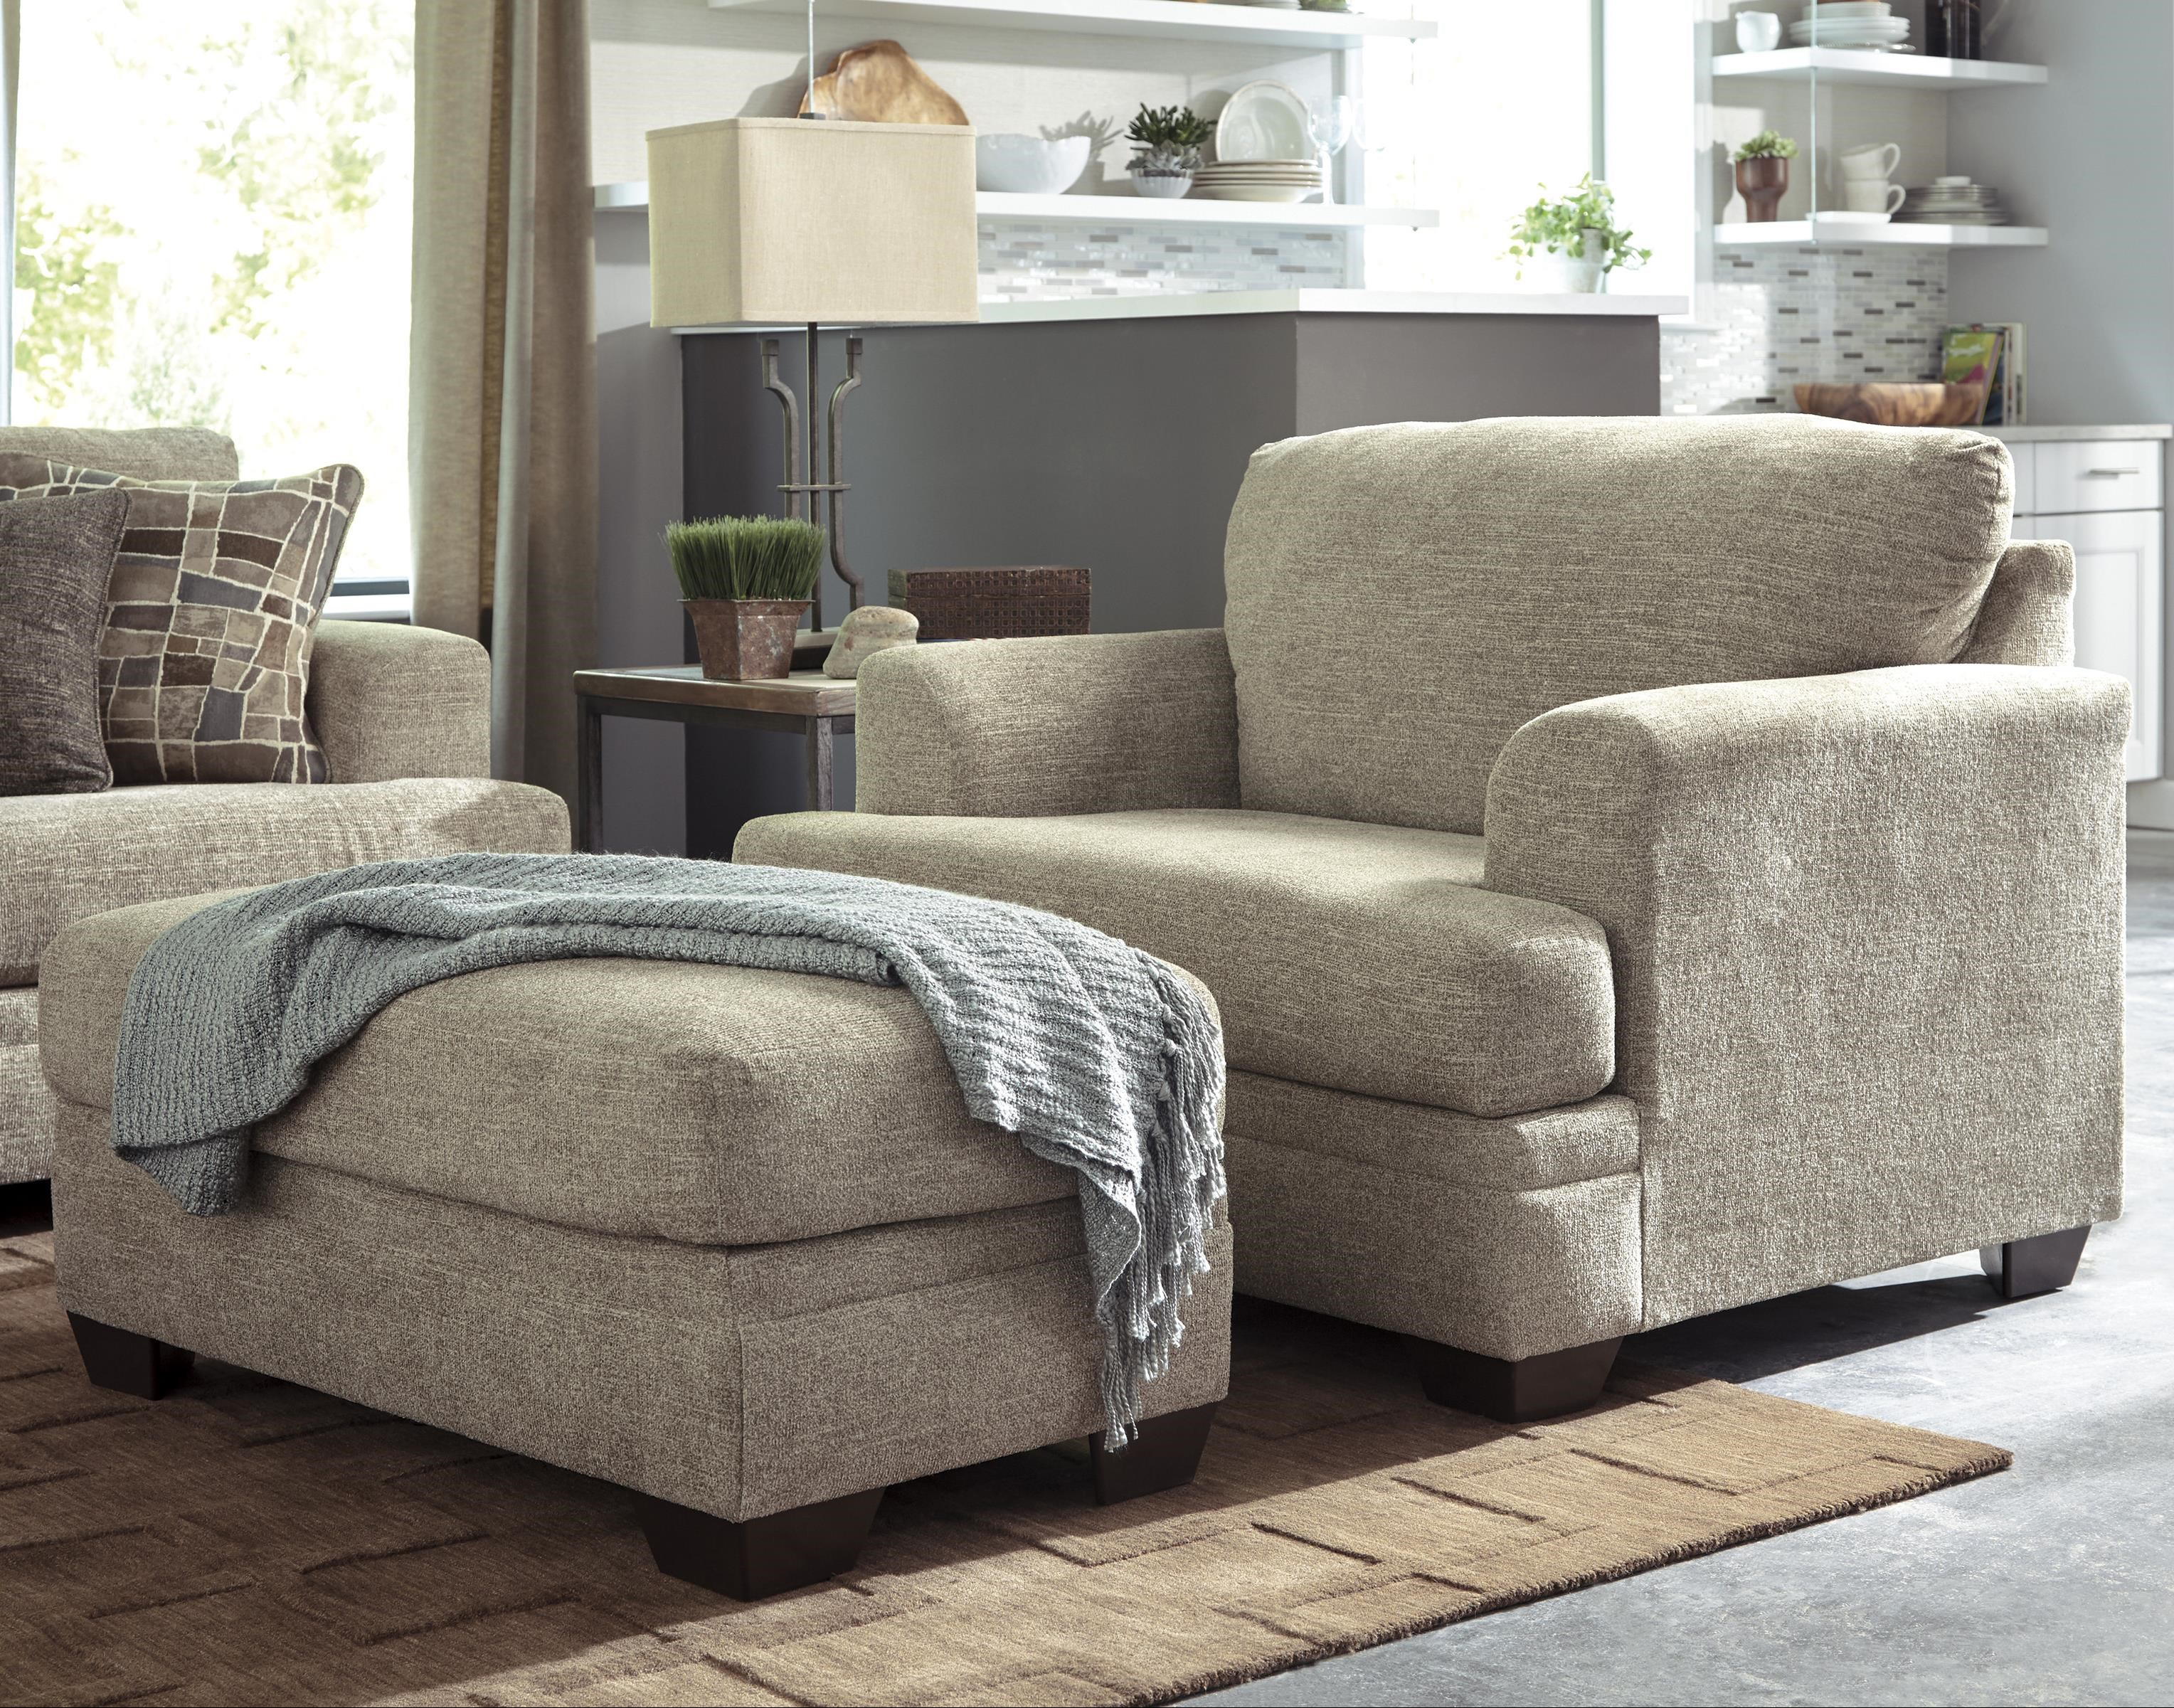 Benchcraft Barrish Contemporary Chair and a Half & Ottoman ...